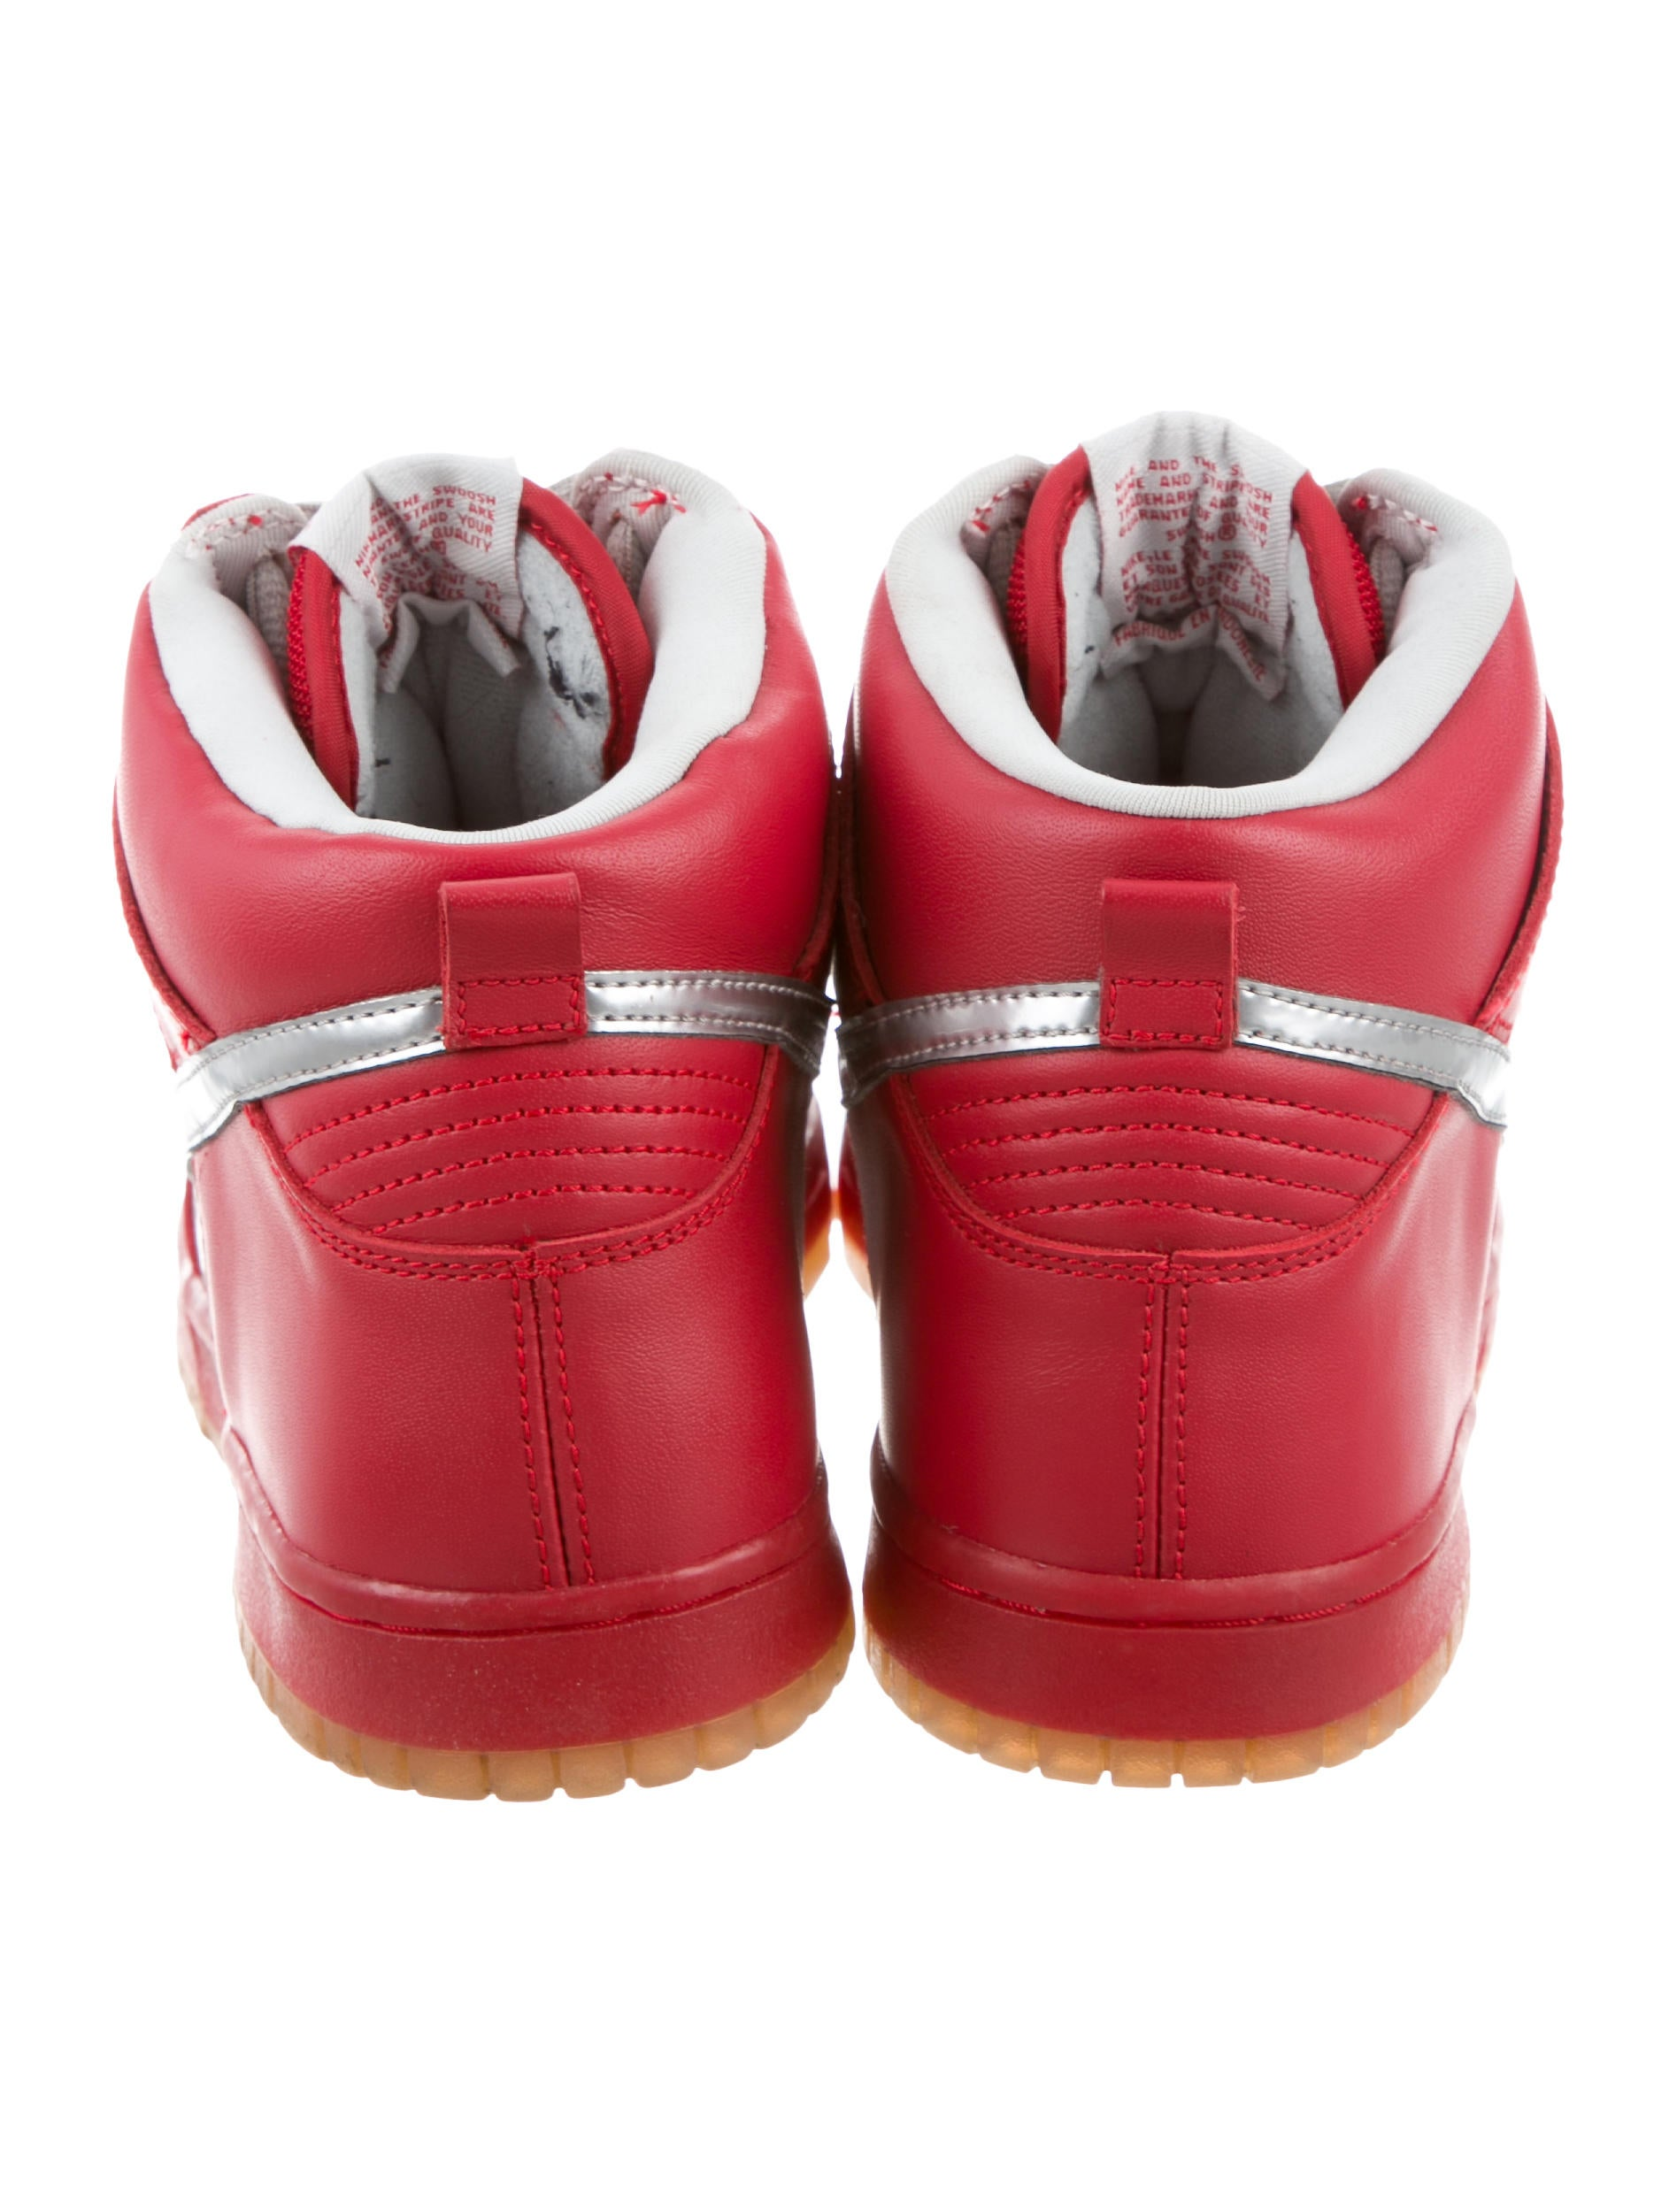 eb05b1960d france nike dunk high premium sb mork mindy 4692d 923b0  where to buy dunk  sb mork mindy sneakers df591 27c5a